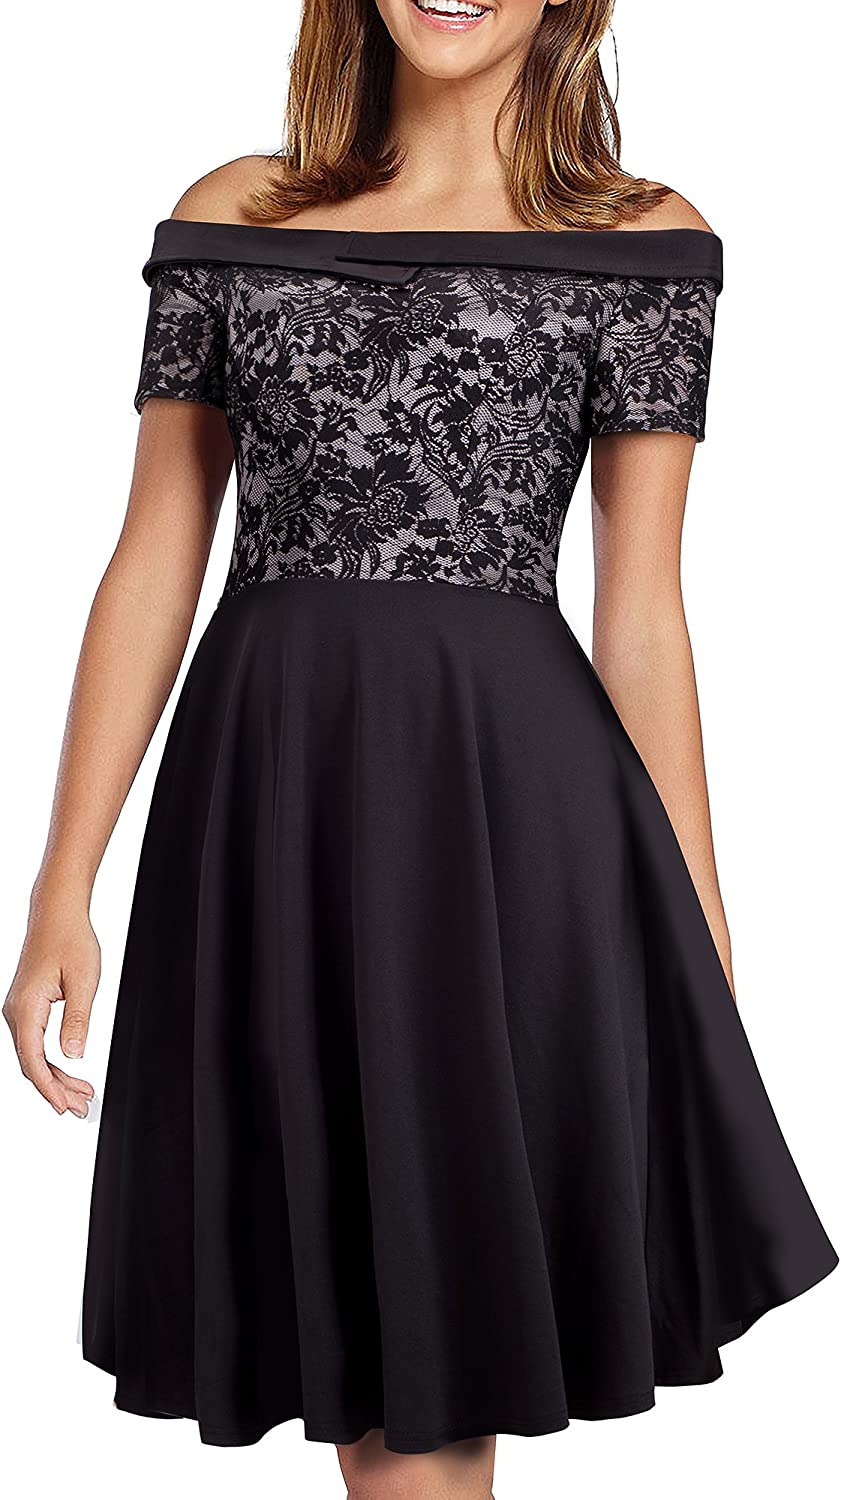 WEIJIE Women's Vintage Casual Flare Lace Off Shoulder Party Dress